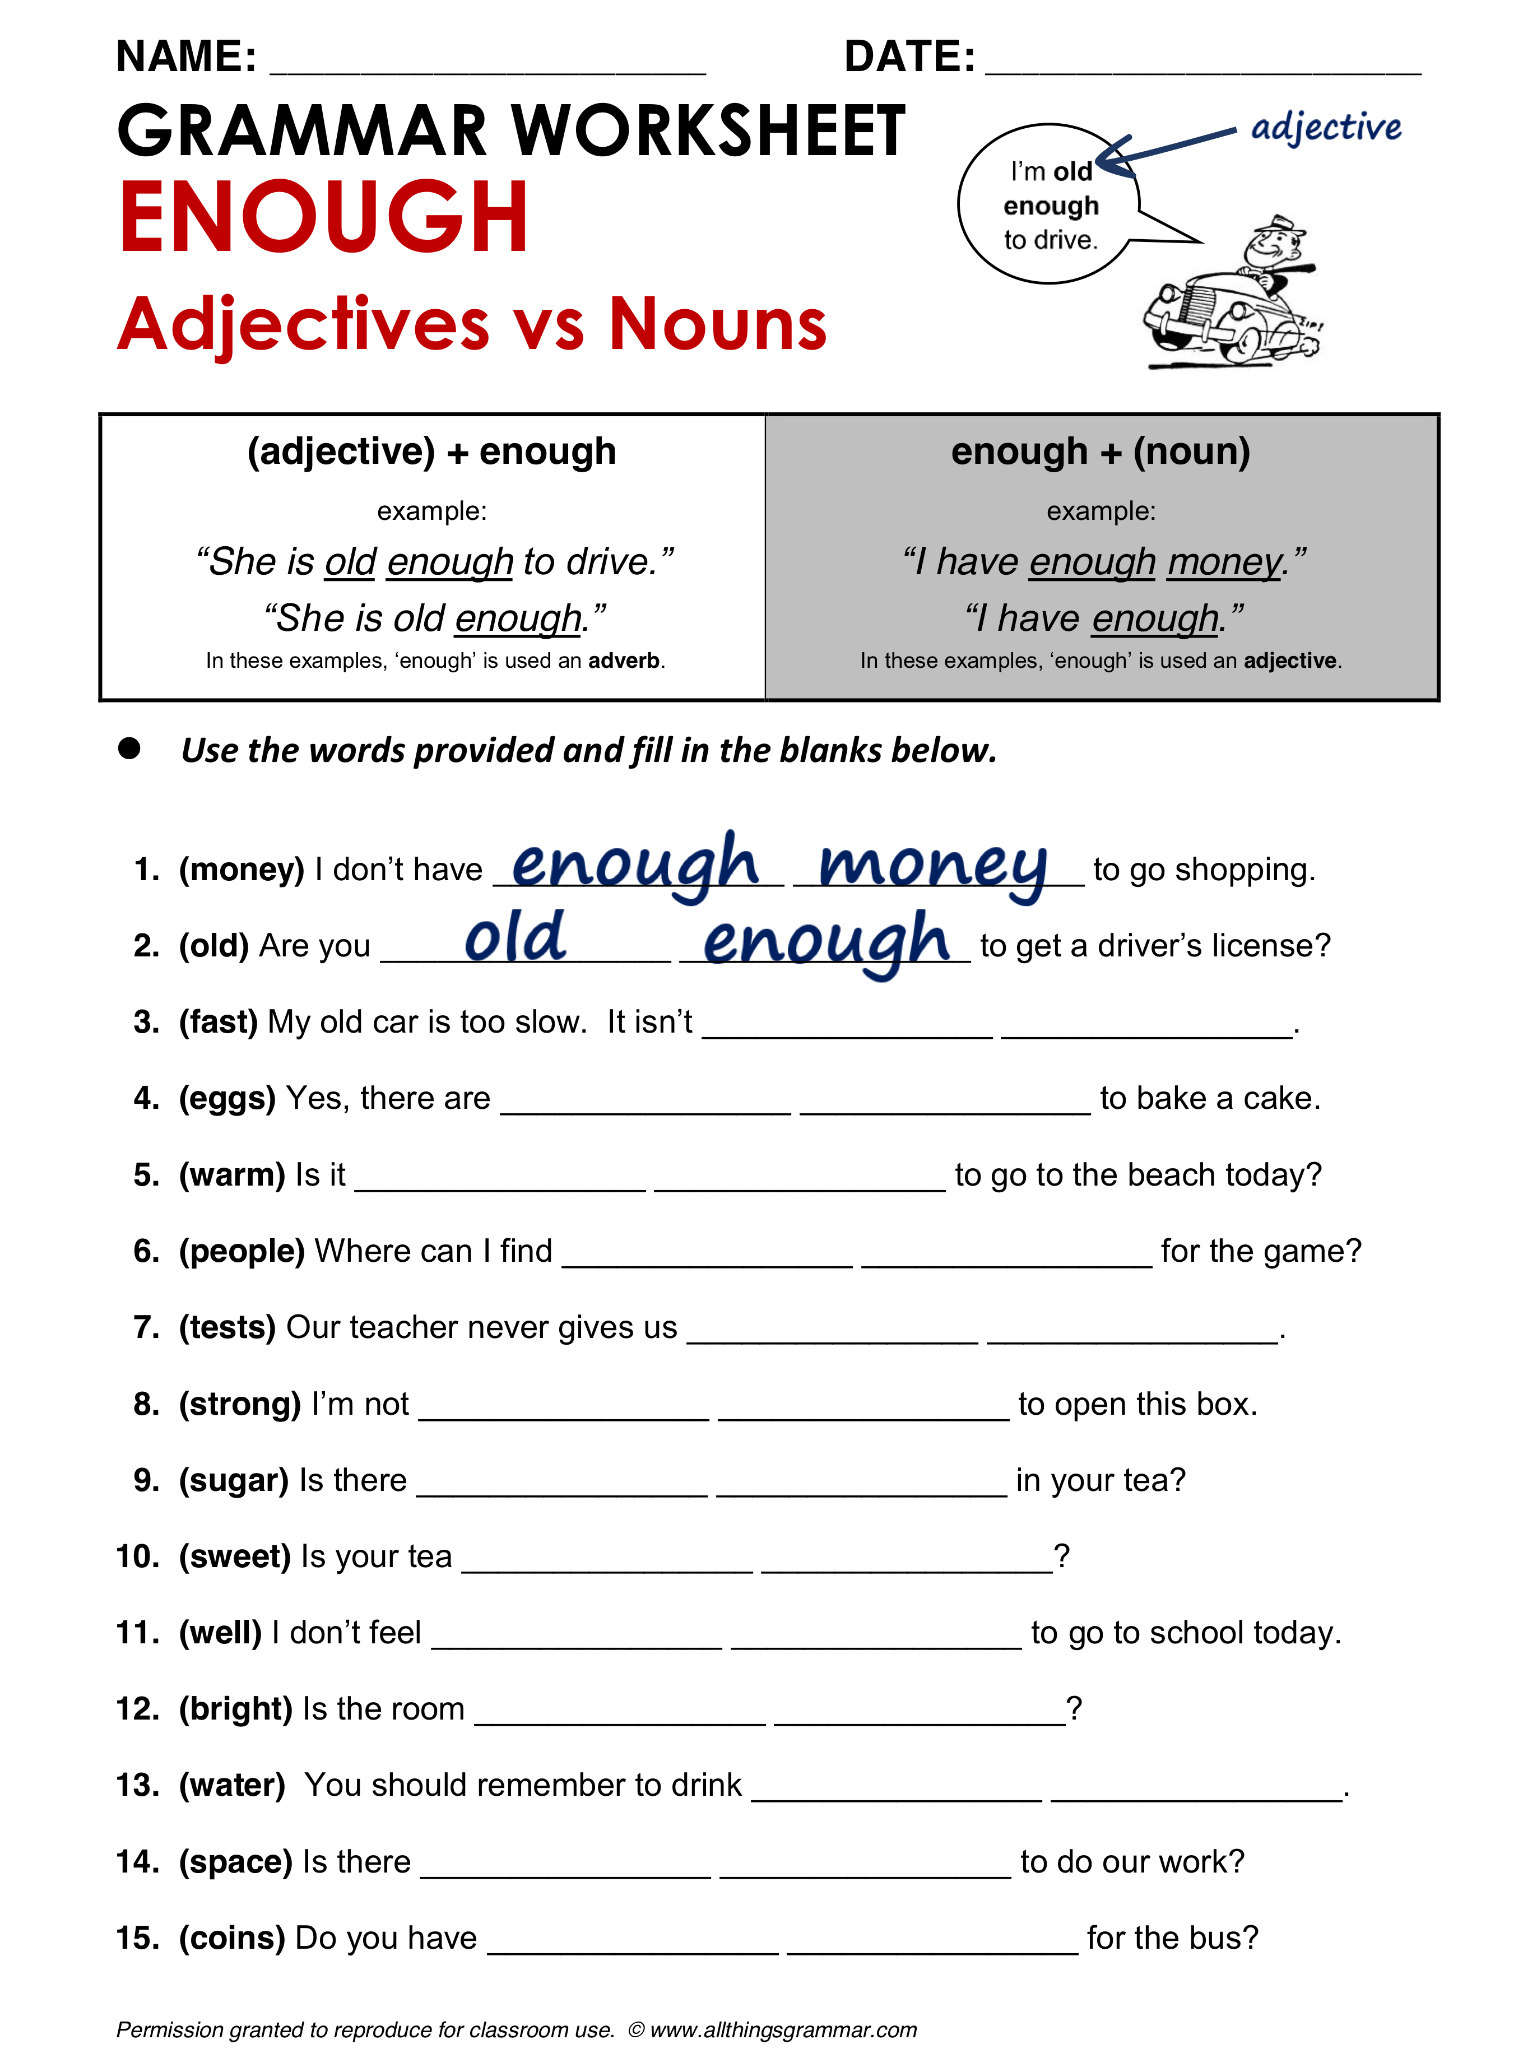 English Grammar Enough Adjectives Vs Nouns Lthingsgrammar Too And Enough